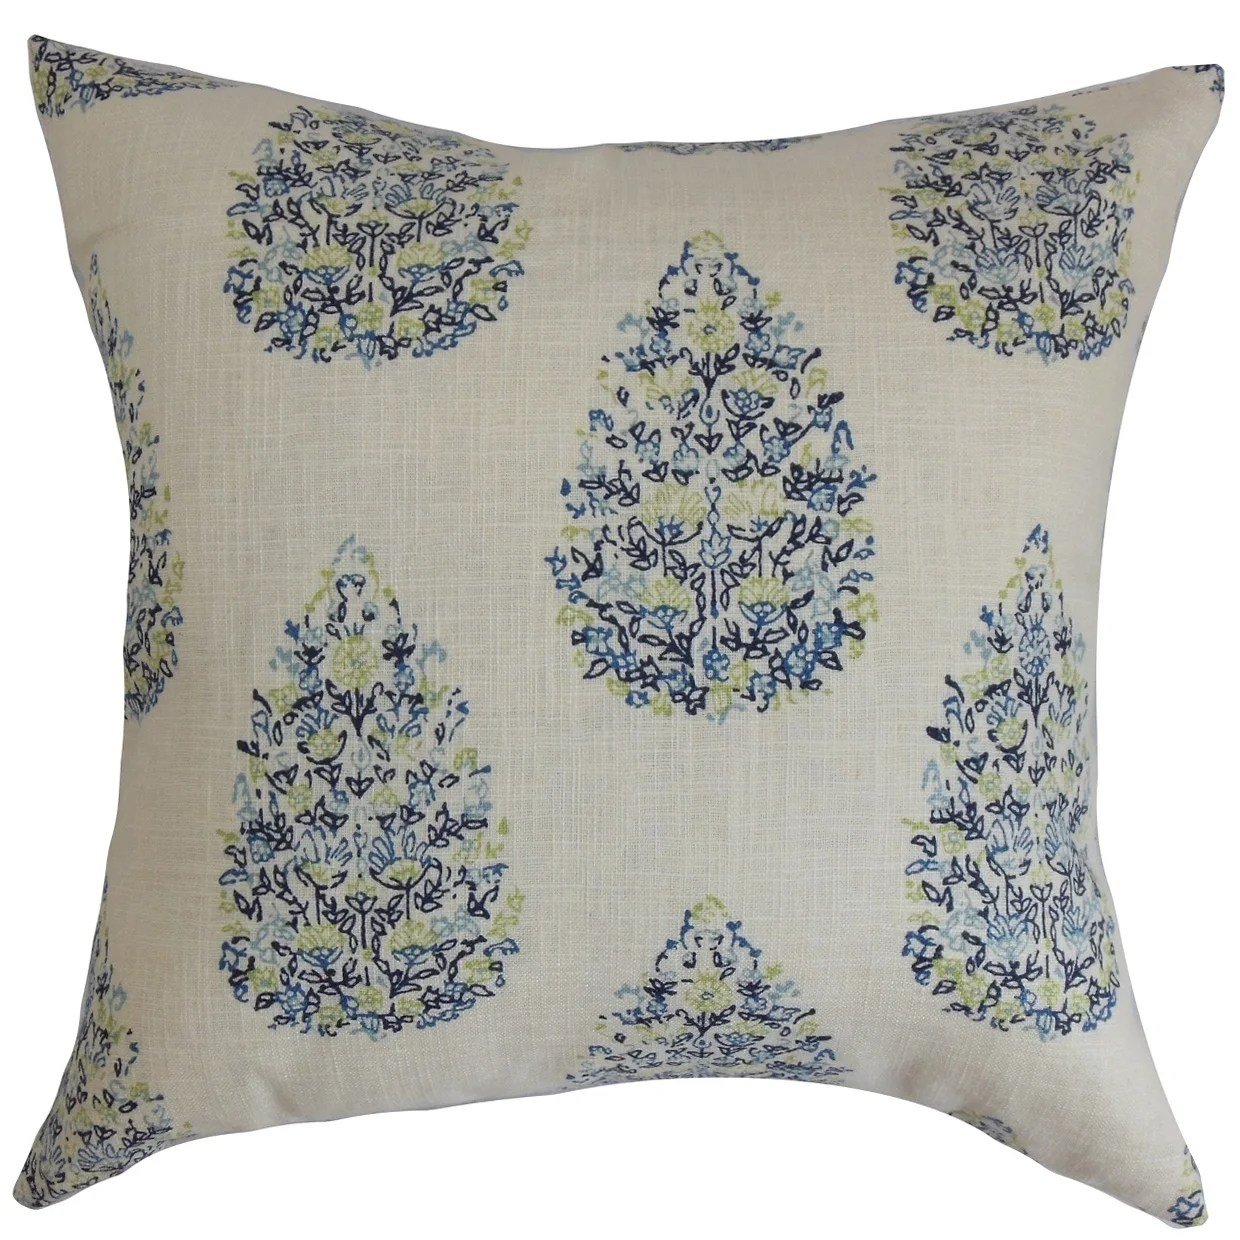 Faeyza Floral Blue Green Down Filled Throw Pillow